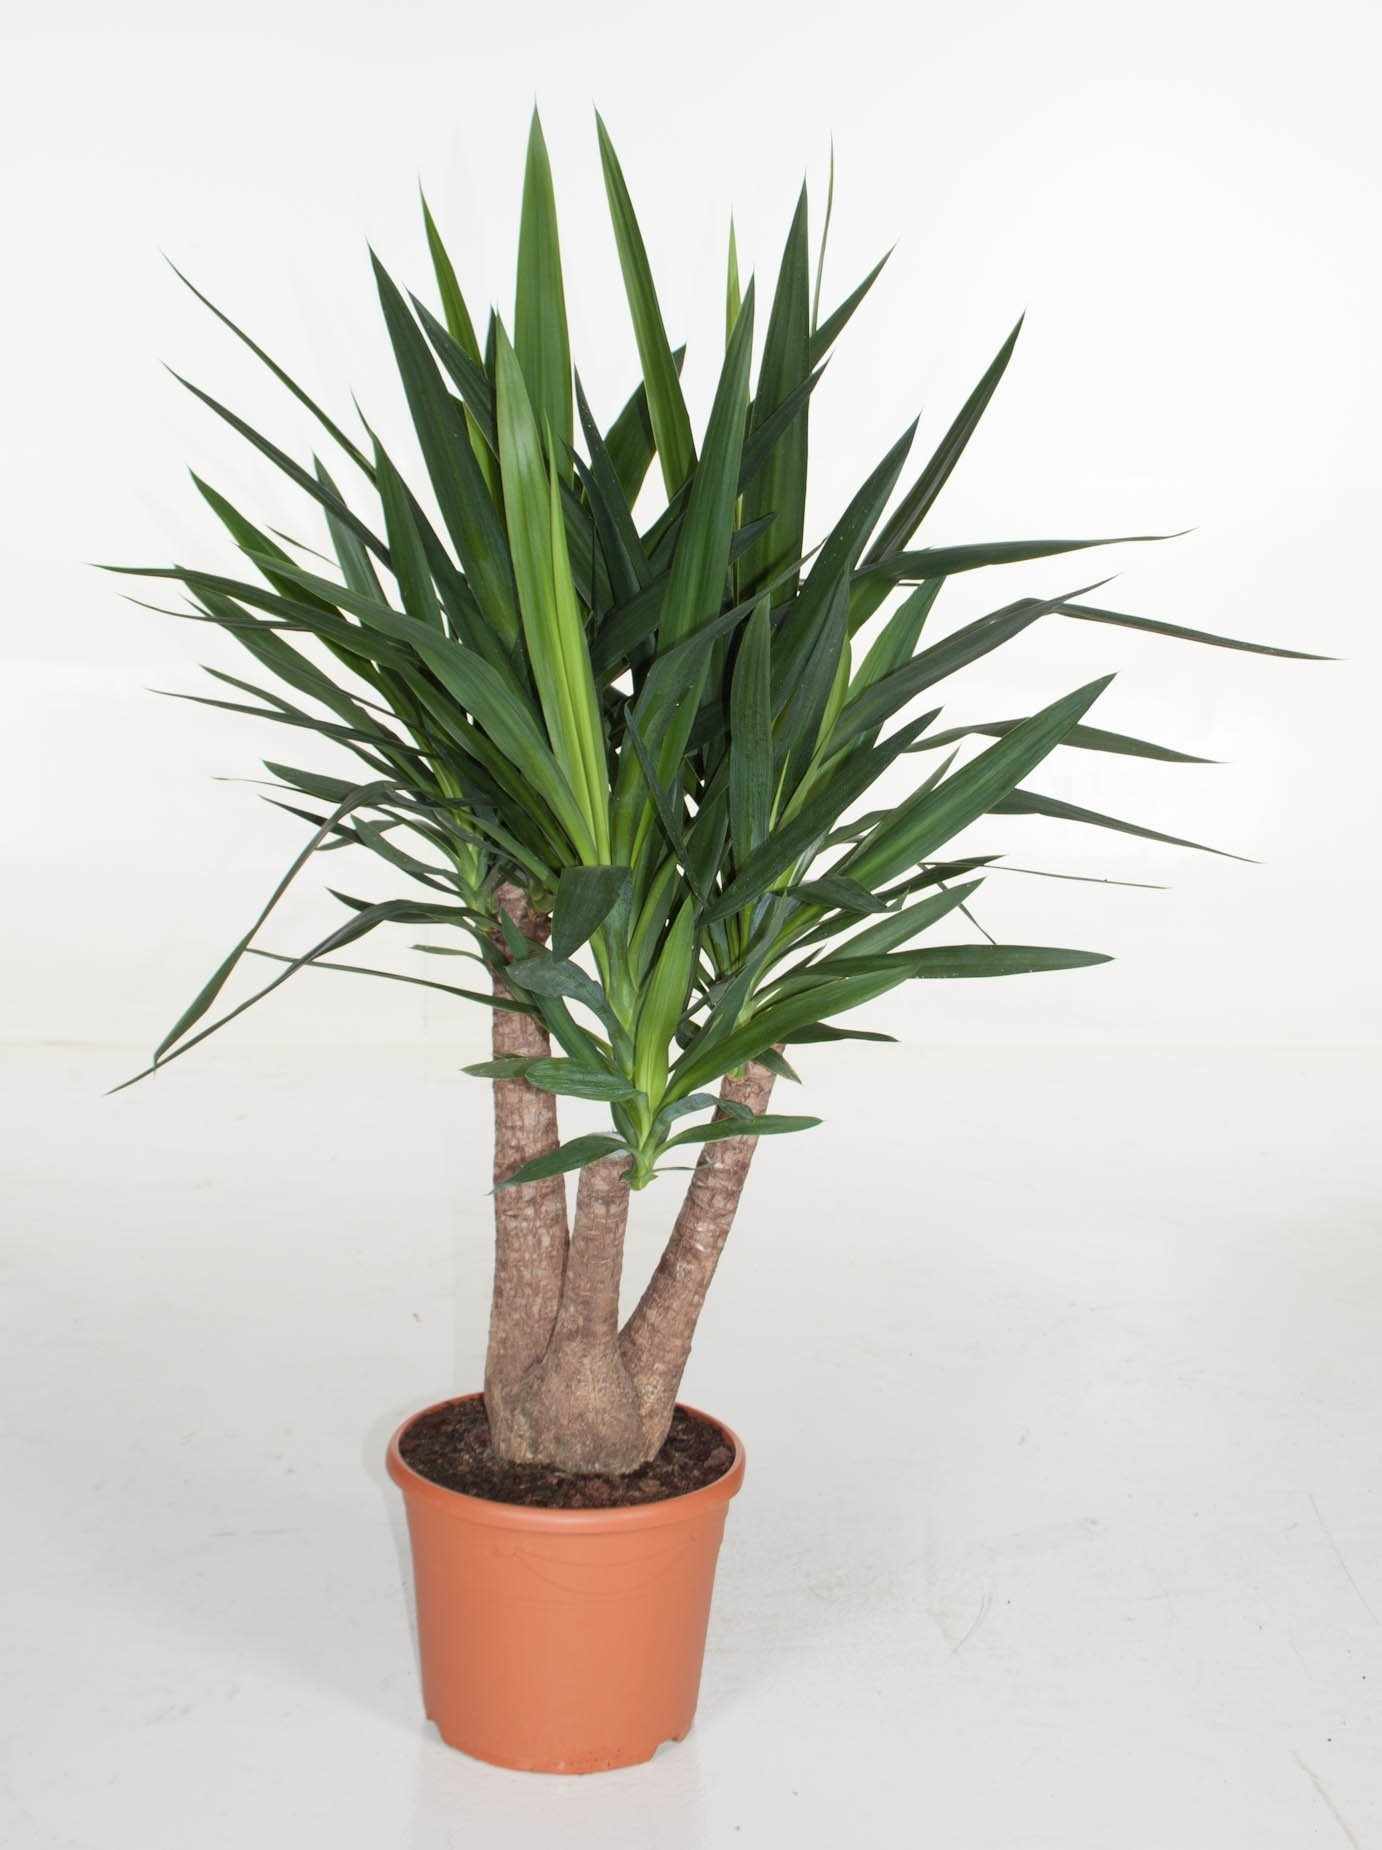 Yucca - Yucca like to have full sun light so being near a west window is best. Yucca like to have loose, well draining soil. Yucca should be watered consistently but should never be left to sit in water. They can be watered more sporadically in winter time. * Information from The Spruce *